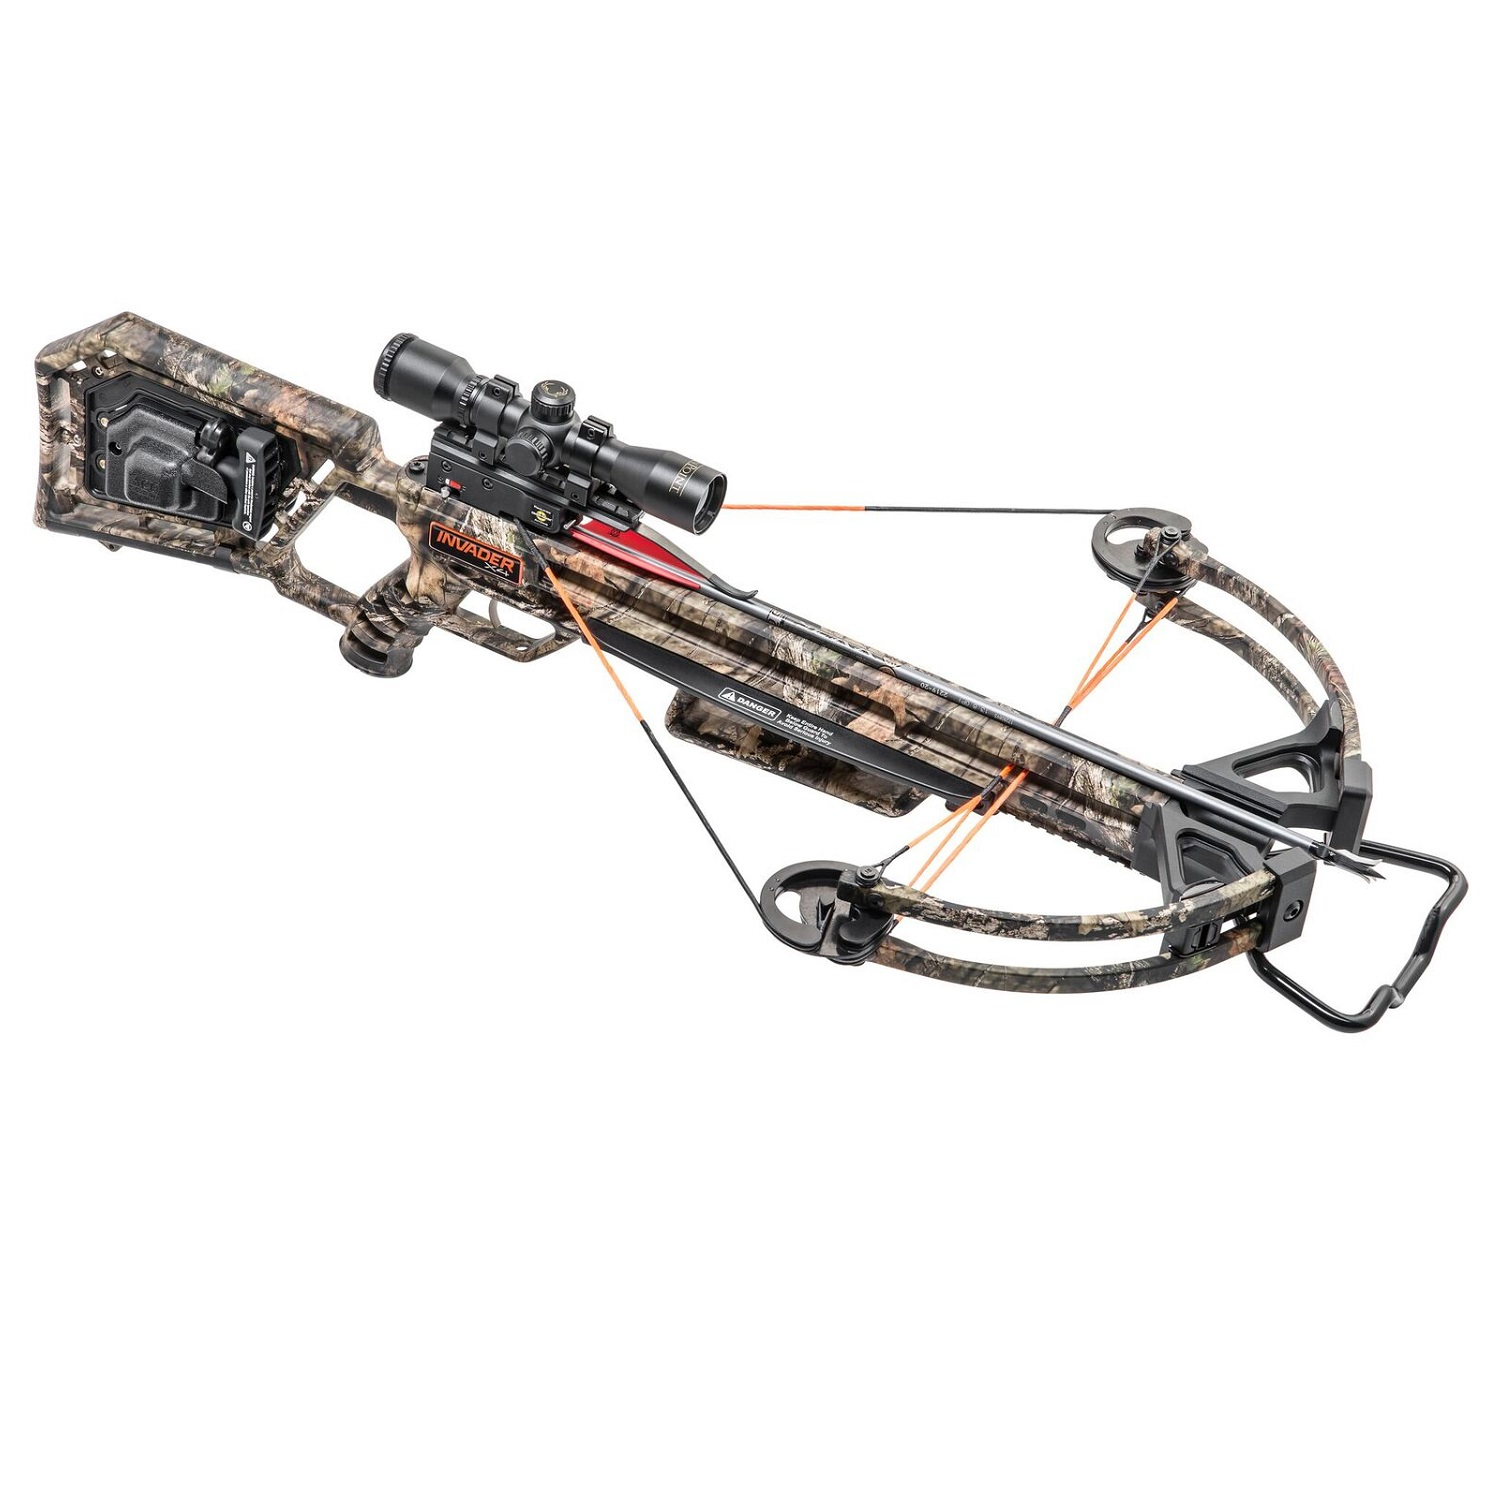 Wicked Ridge Invader X4 Crossbow Pkg ACUDRAW 50 by Wicked Ridge